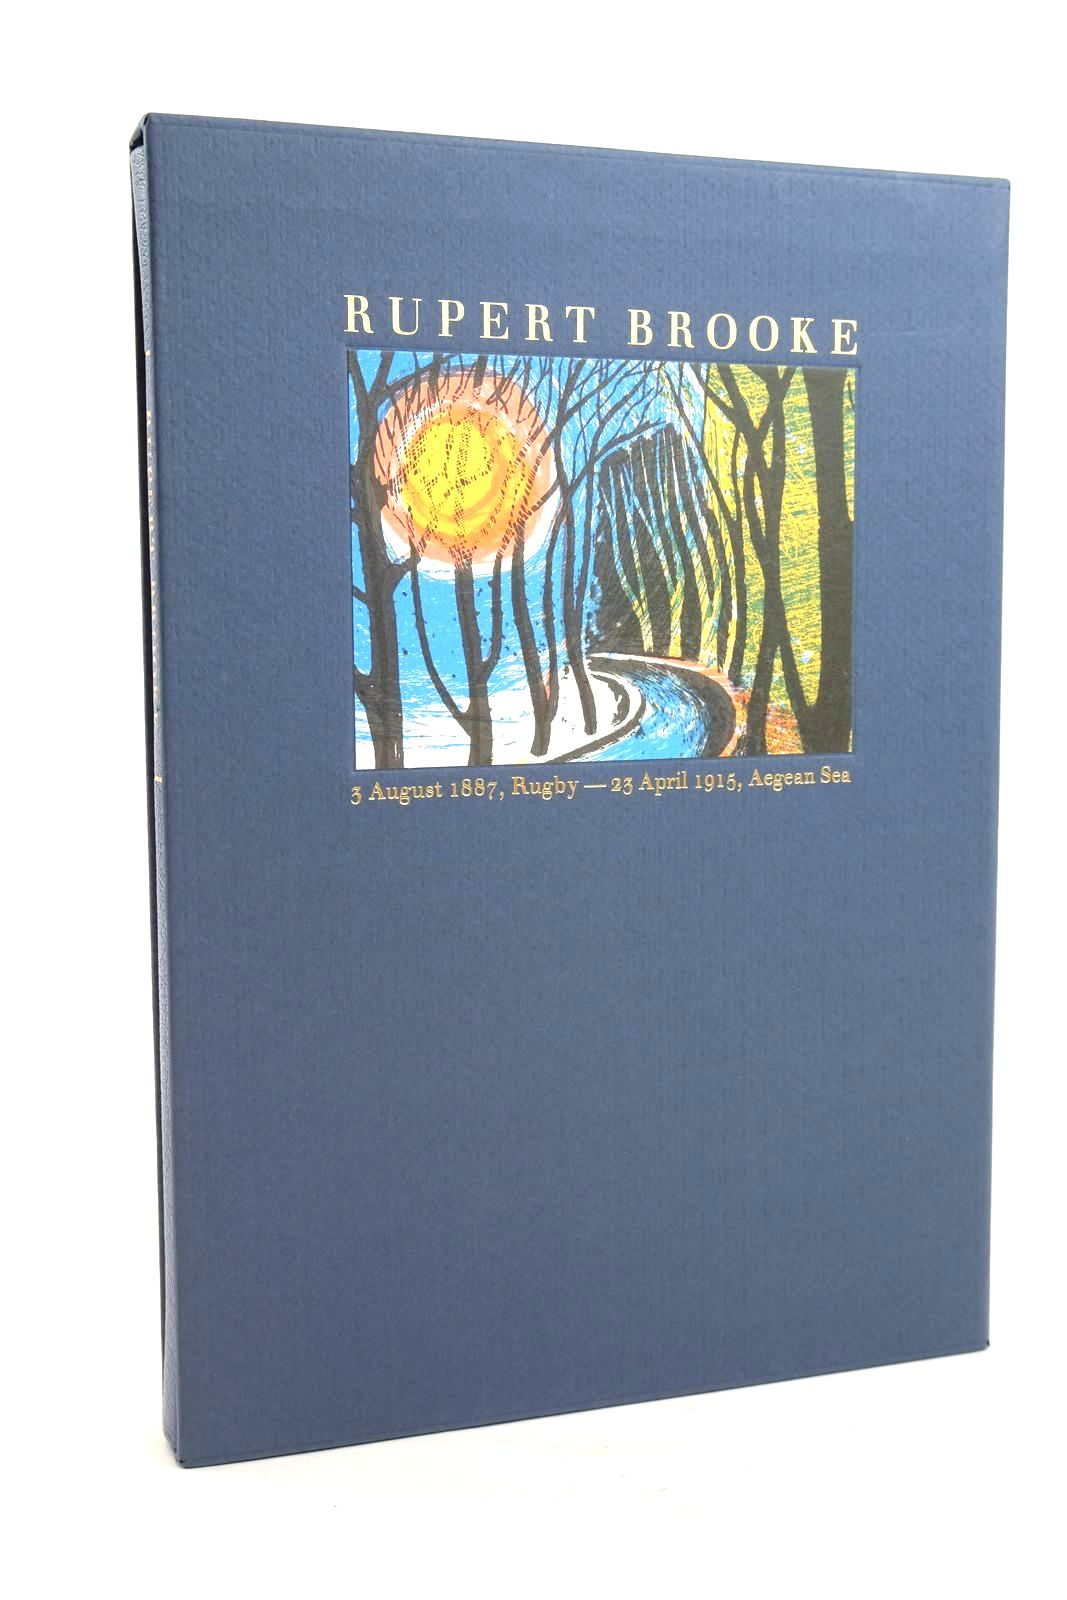 Photo of SELECTED POEMS written by Brooke, Rupert illustrated by Kluz, Ed published by Folio Society (STOCK CODE: 1320034)  for sale by Stella & Rose's Books